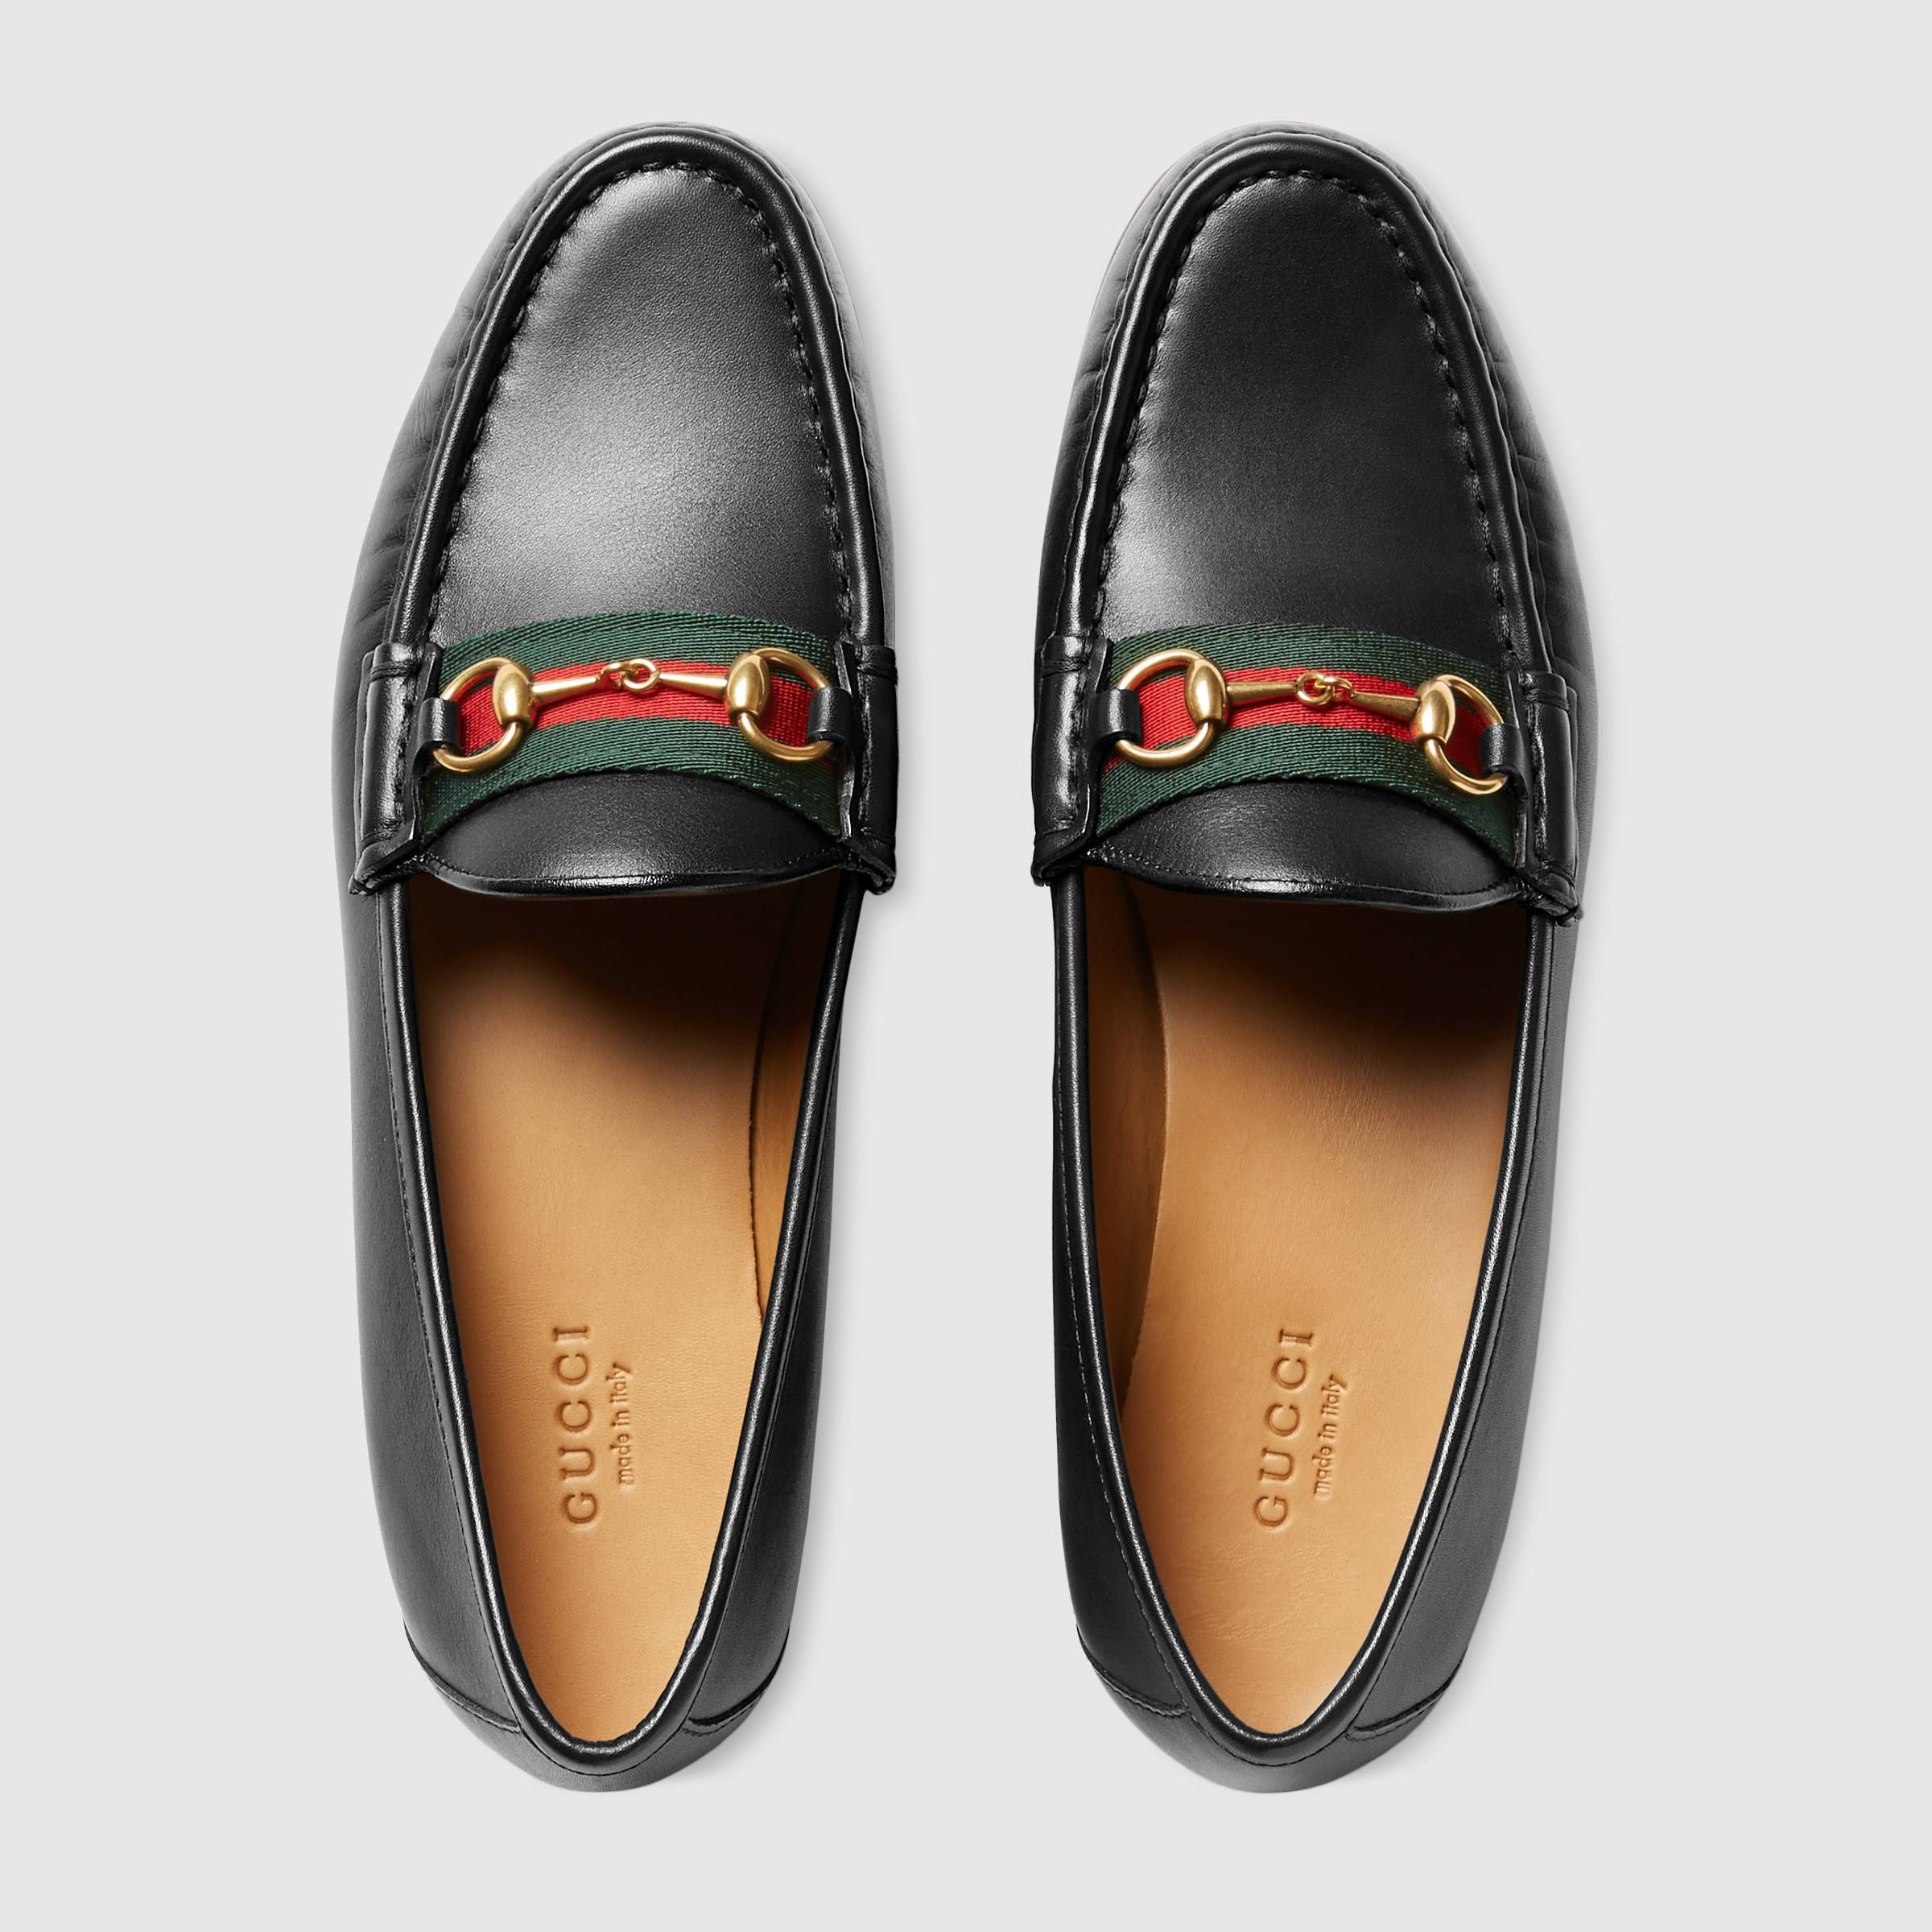 491fe329c26 Gucci Women - Gucci Black Leather horsebit loafers with web -  640.00